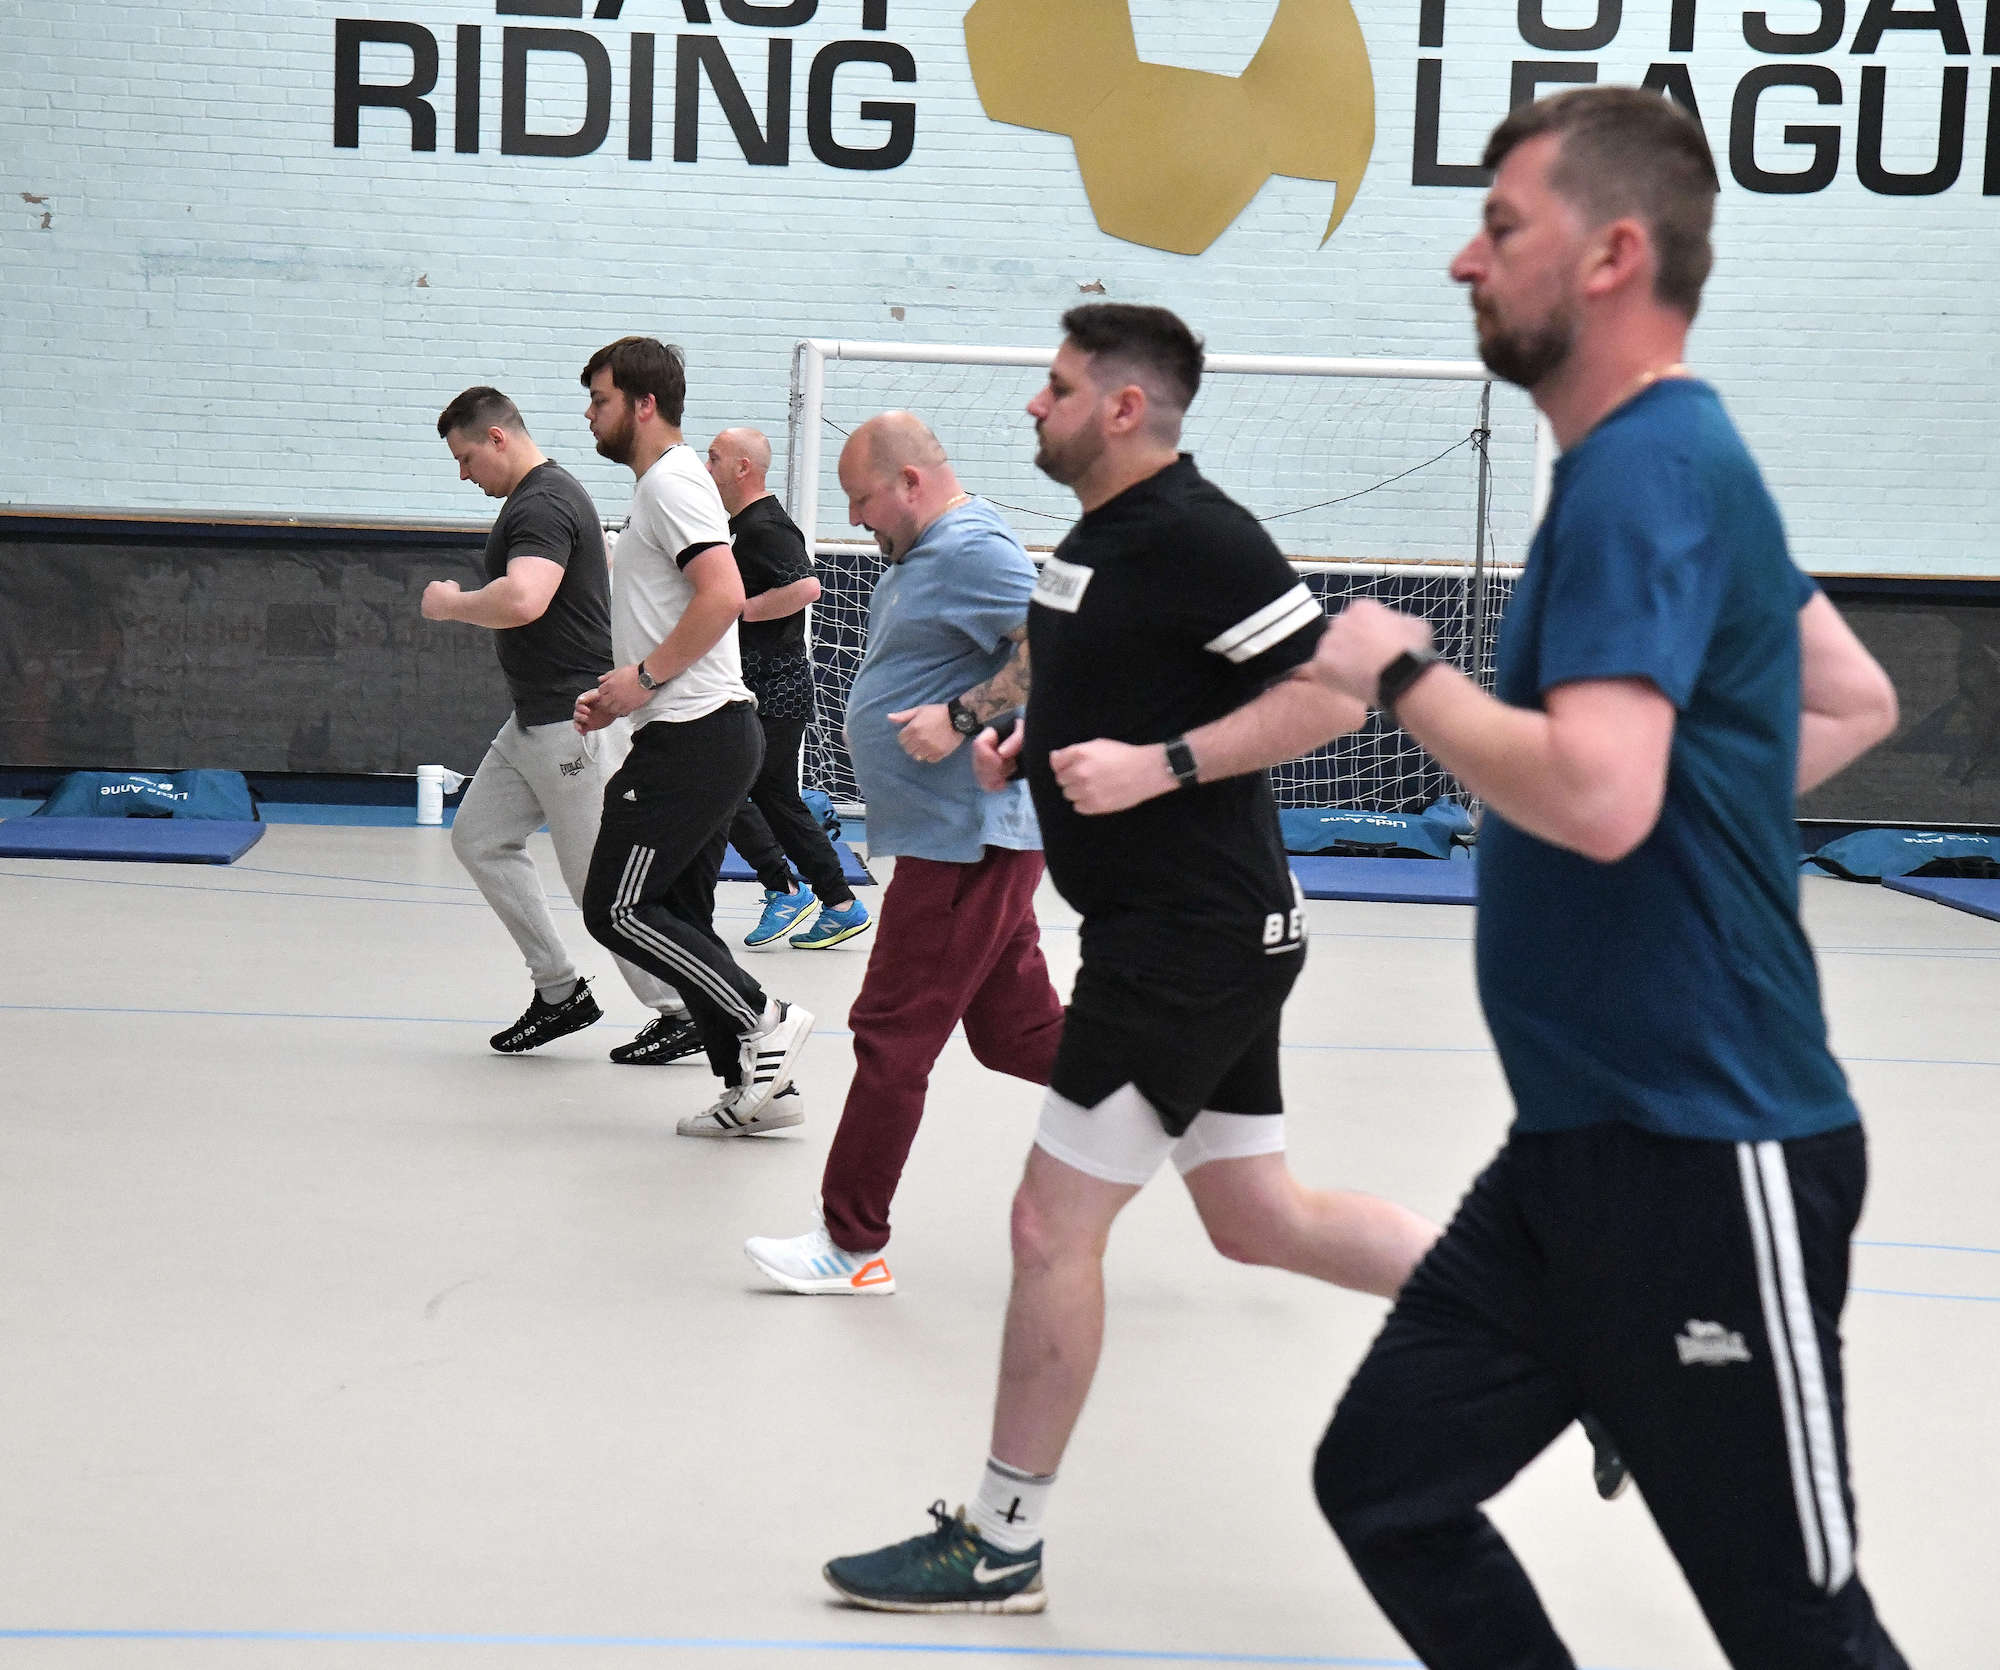 A line of men running in a sports hall